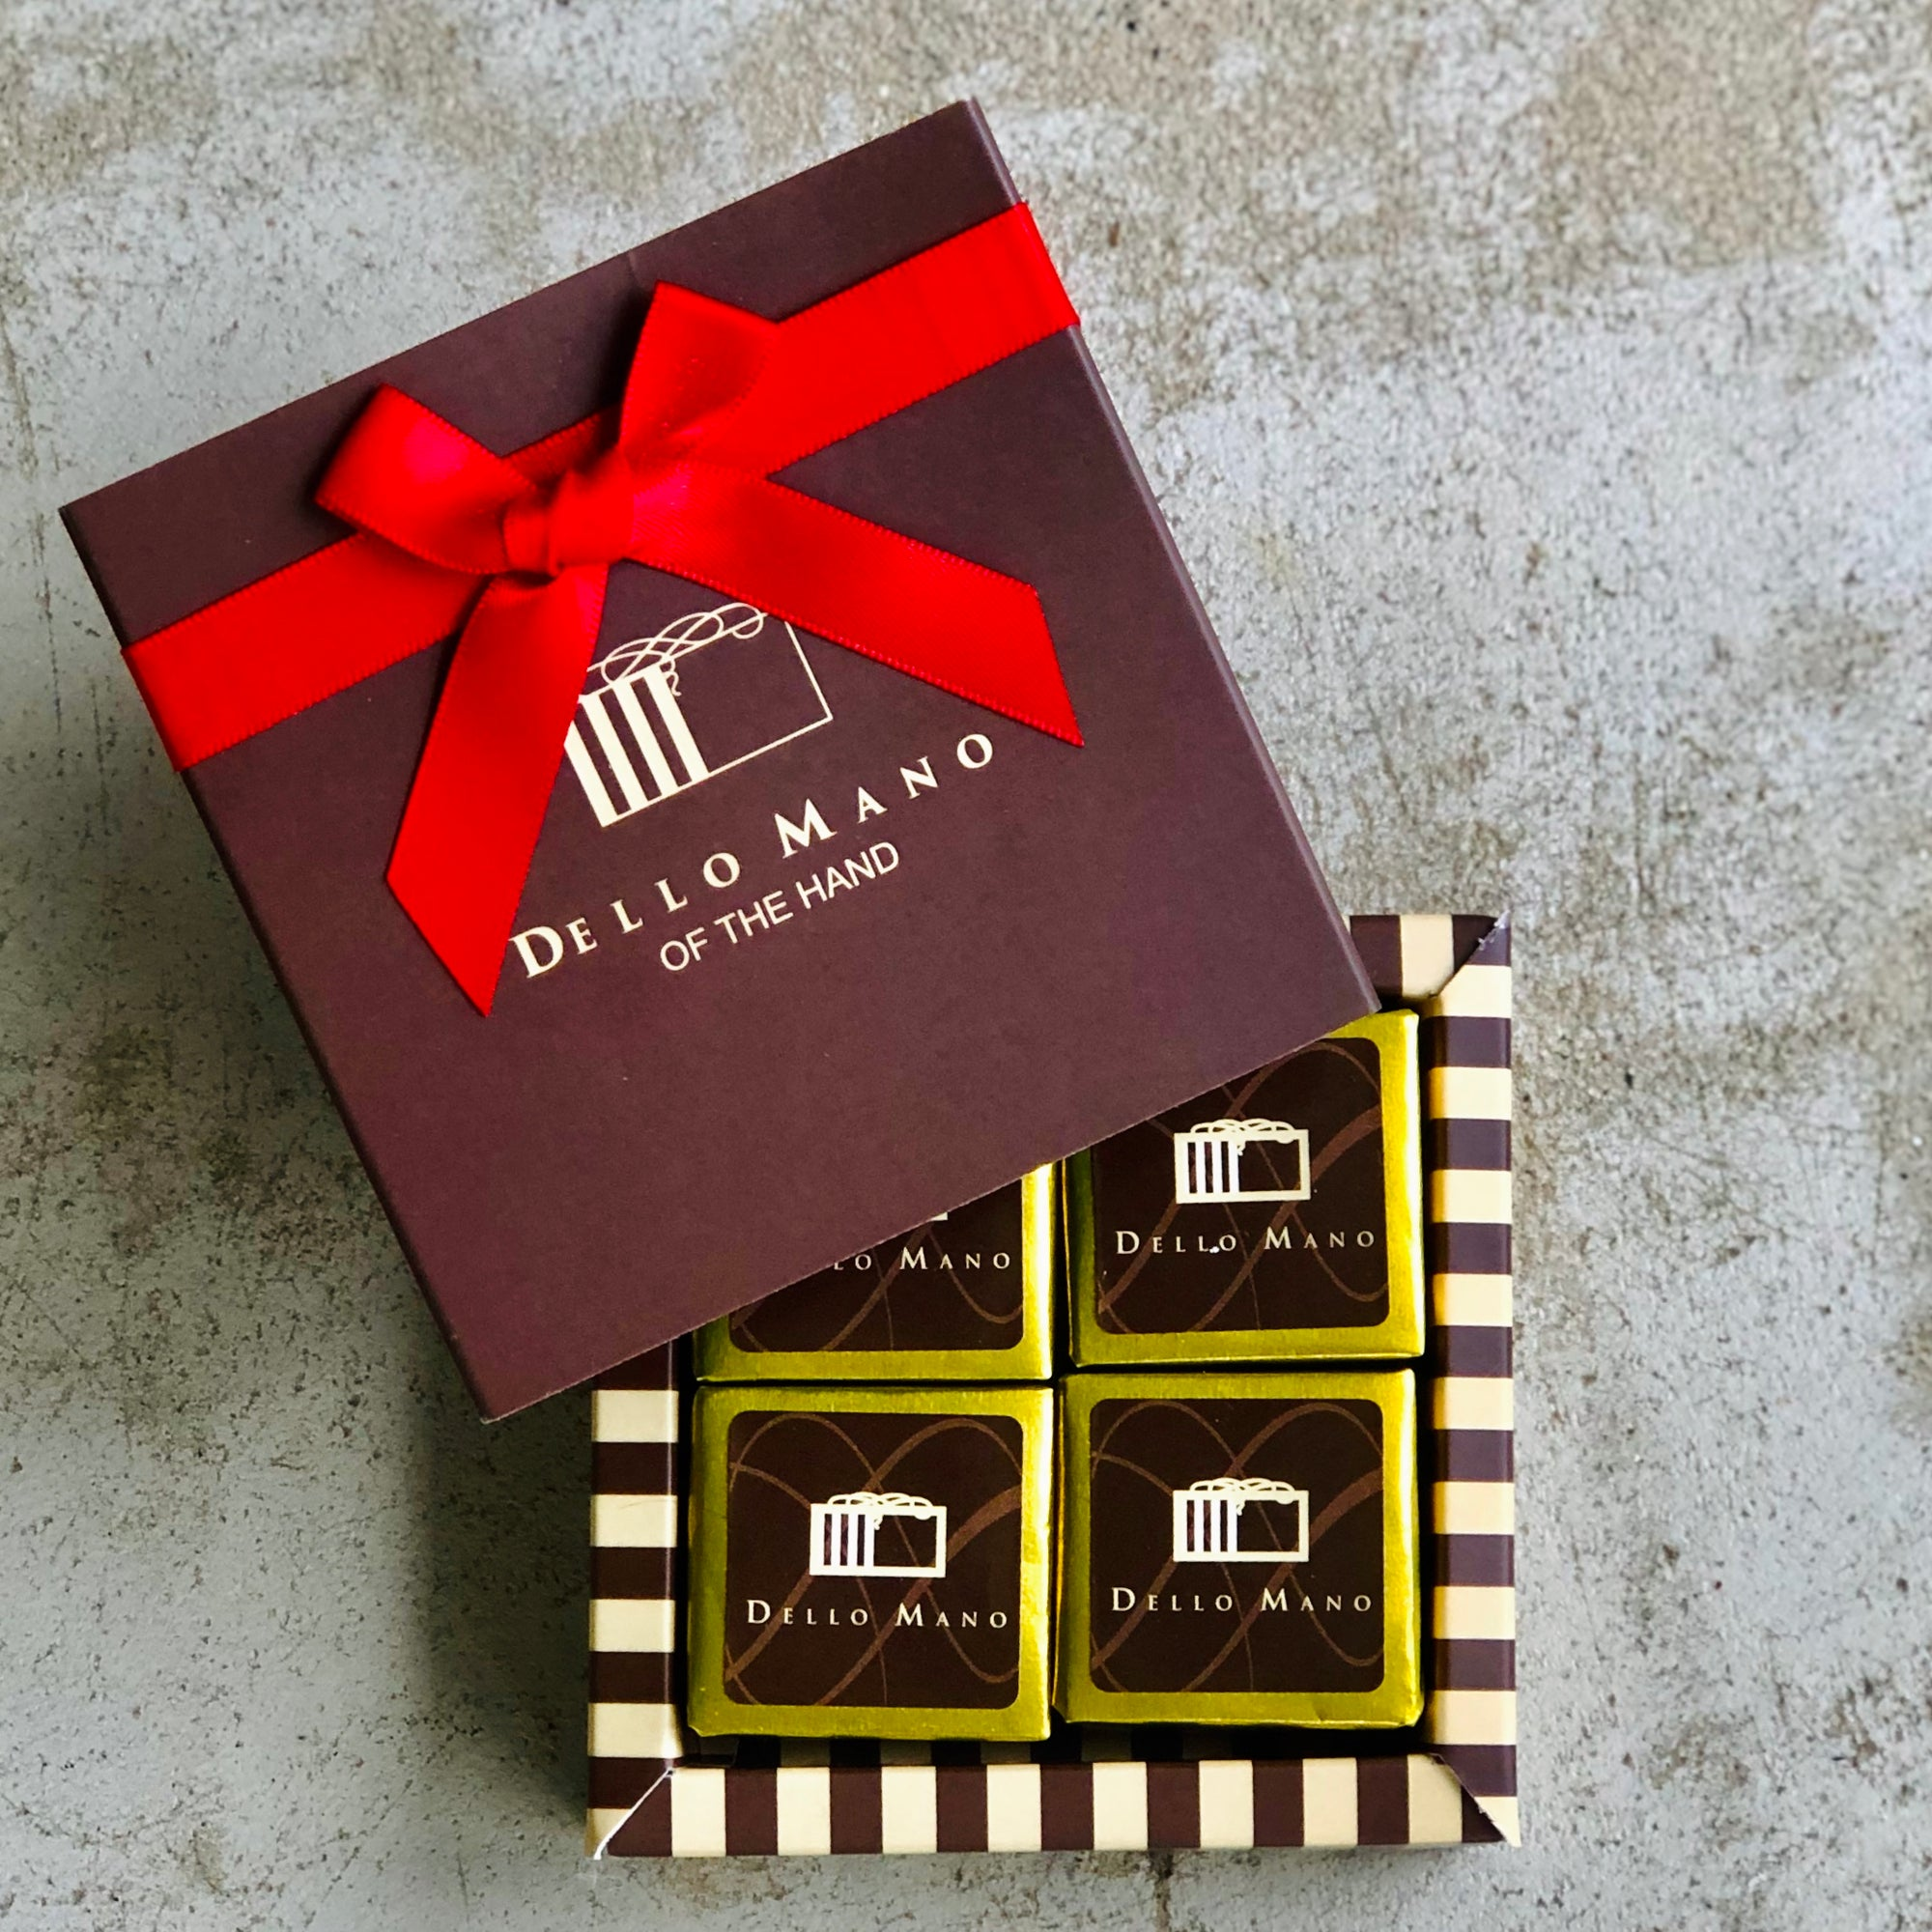 Four brownie cubes in a gift box with lid saying Dello Mano brownies